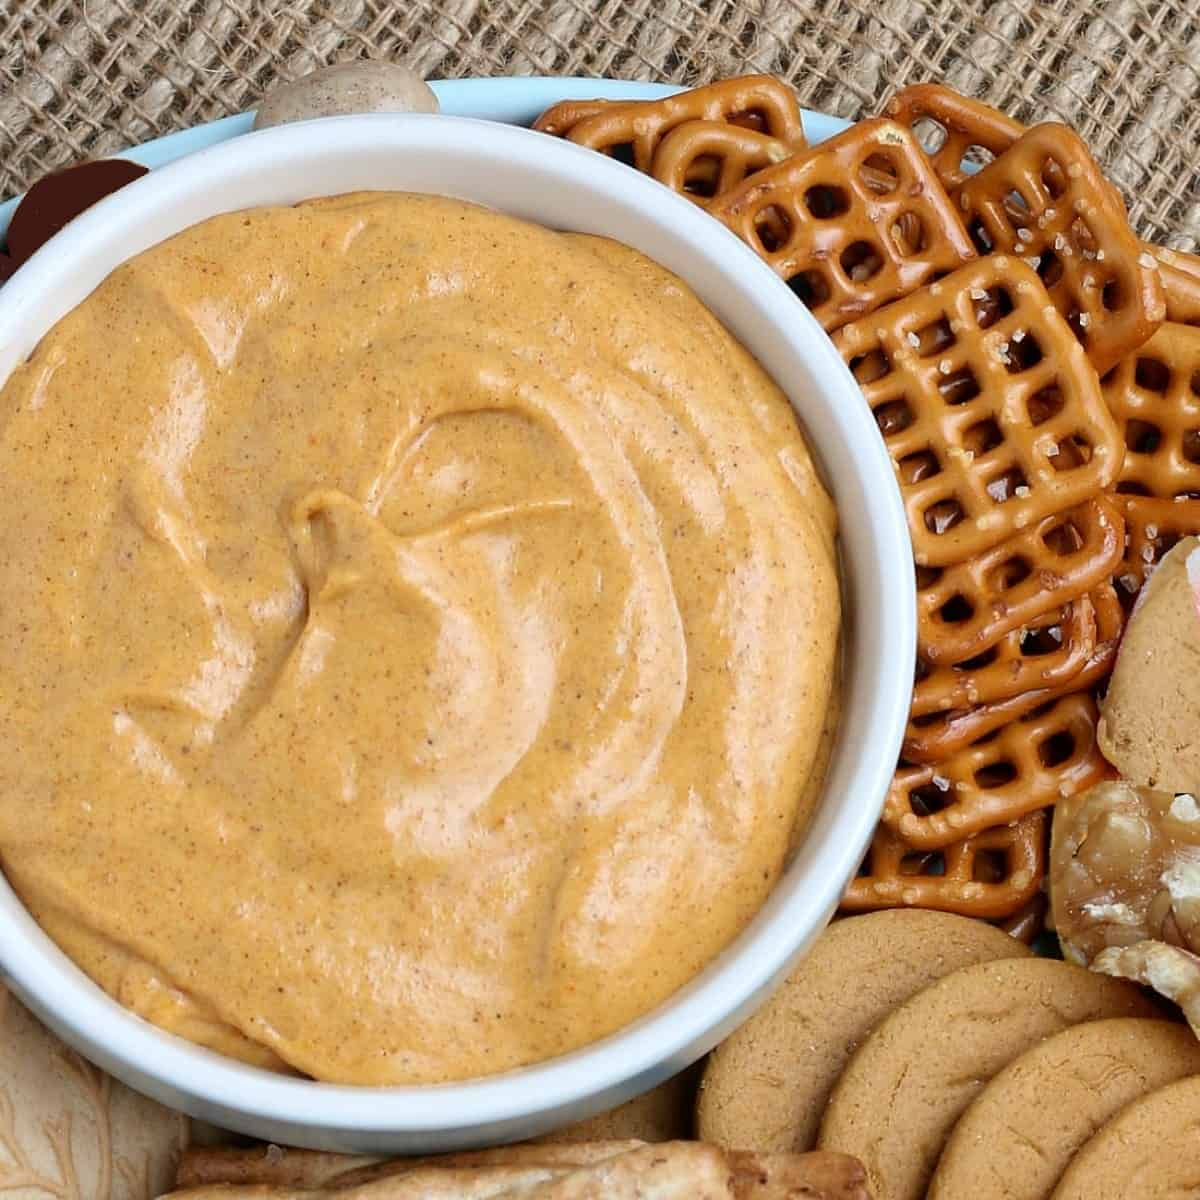 Overhead cropped bowl of pumpkin dip with cookies and nuts scattered around,